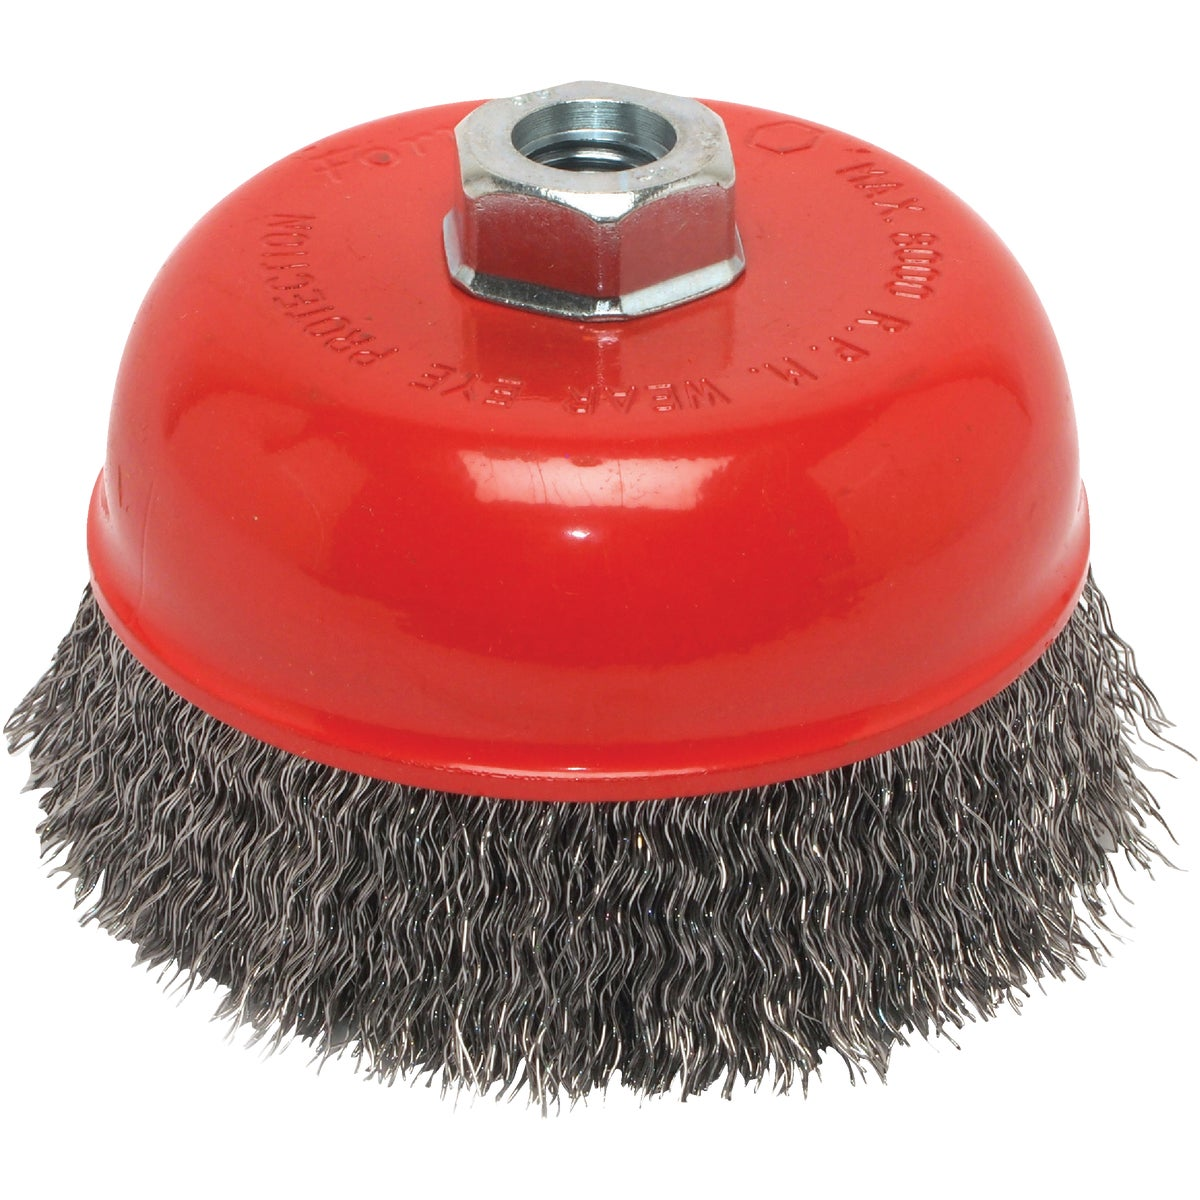 "5"" CRIMPED CUP BRUSH - 72754 by Forney Industries"